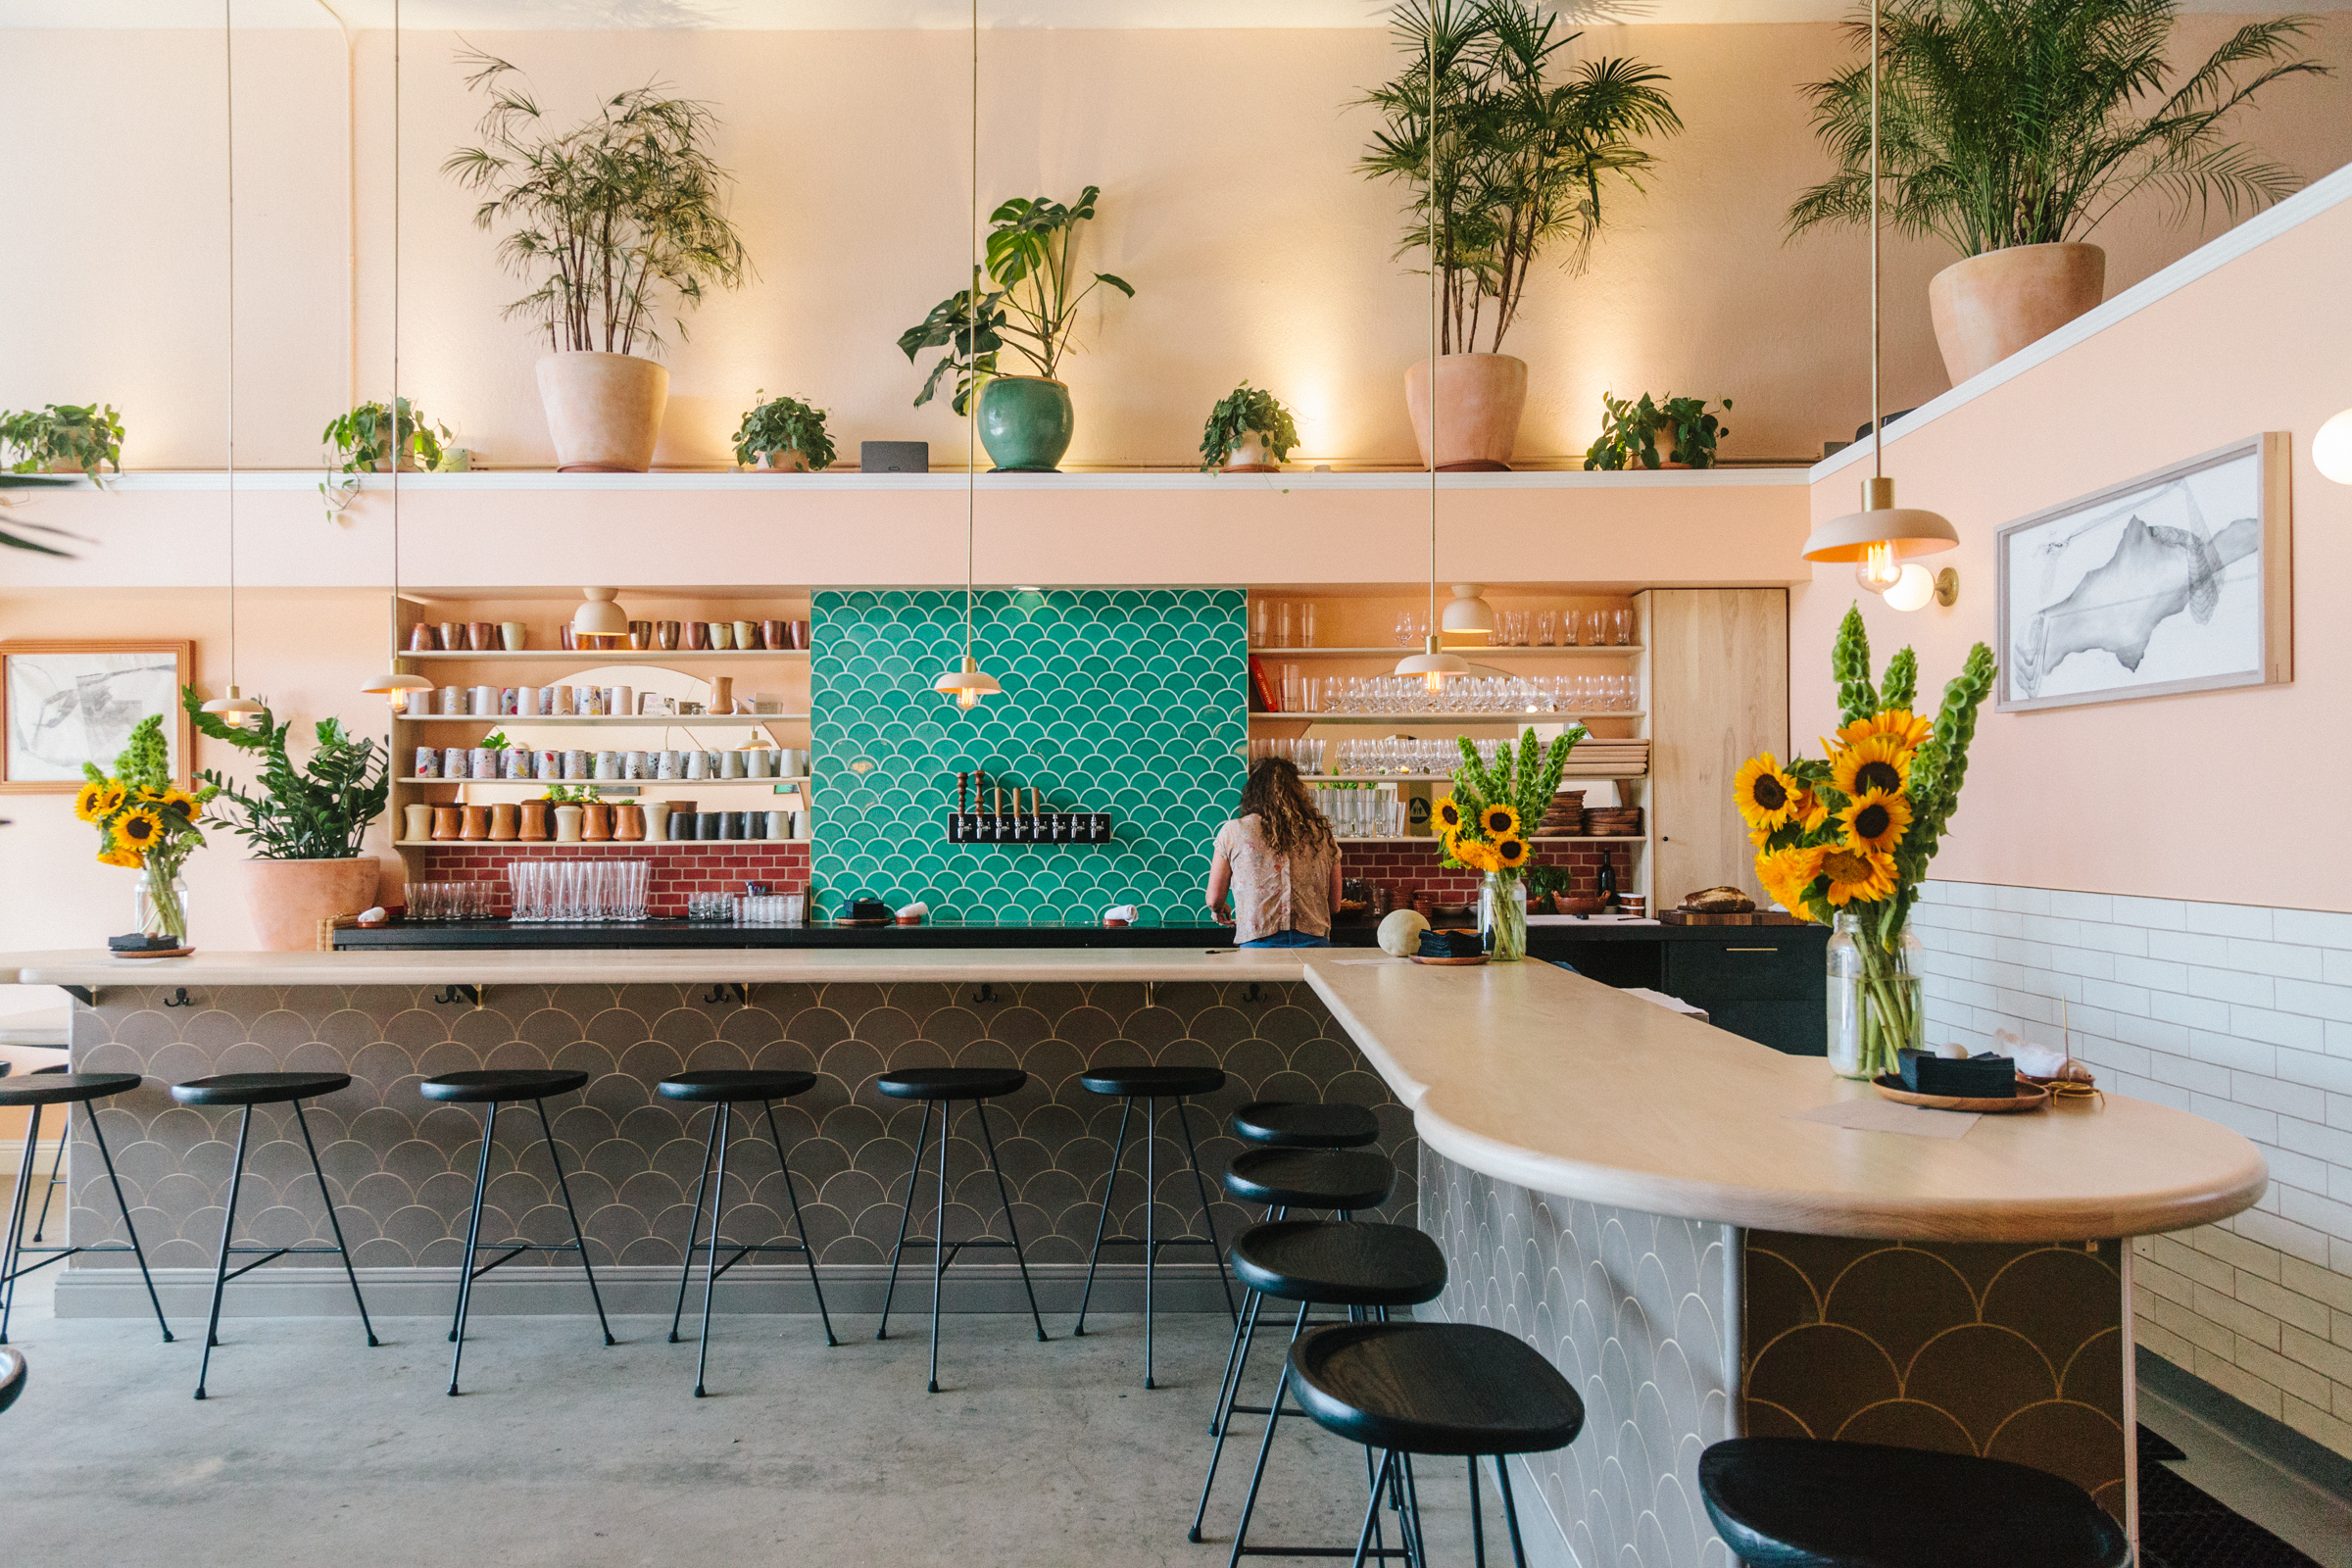 2017_q1_img_hi_res_rights_commercial_roses_taproom_young_american_creative_lauren_andersen_photo_bar_accent_backsplash_emerald_ogee_drop_FC186416_1.jpg?mtime=20181005100235#asset:419623